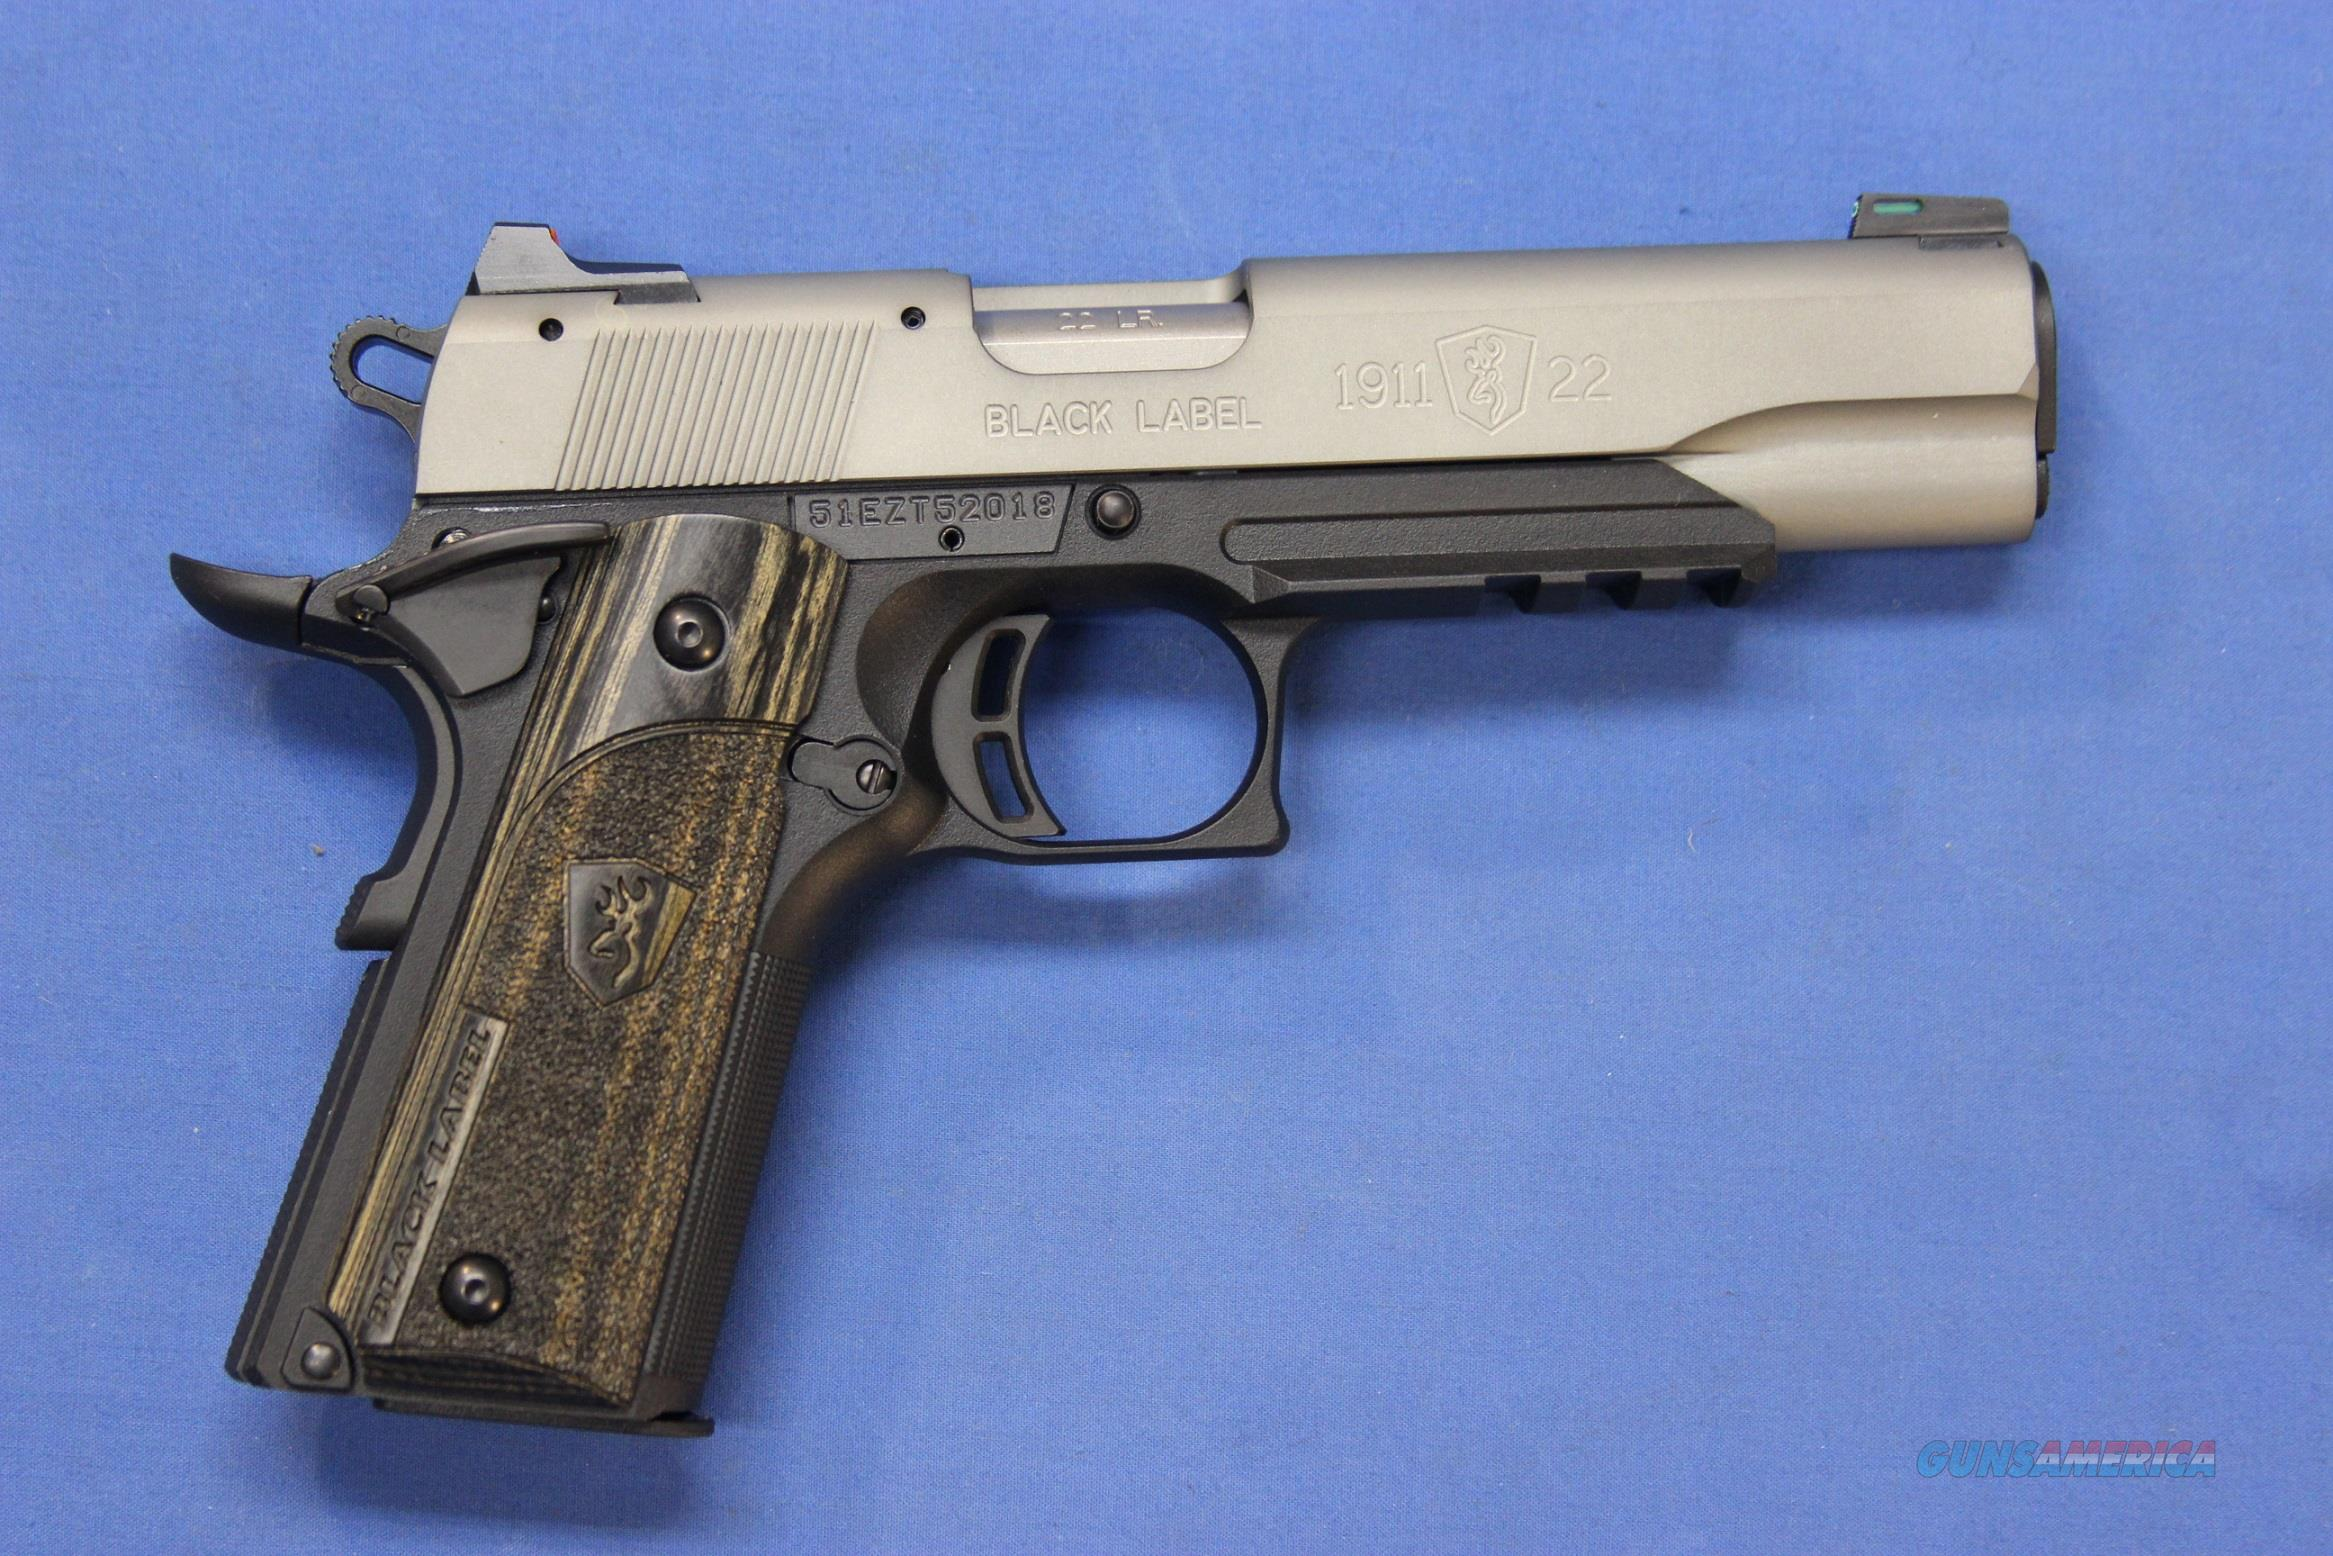 BROWNING 1911-22 BLACK LABEL .22 LR - NEW IN BOX  Guns > Pistols > Browning Pistols > Other Autos